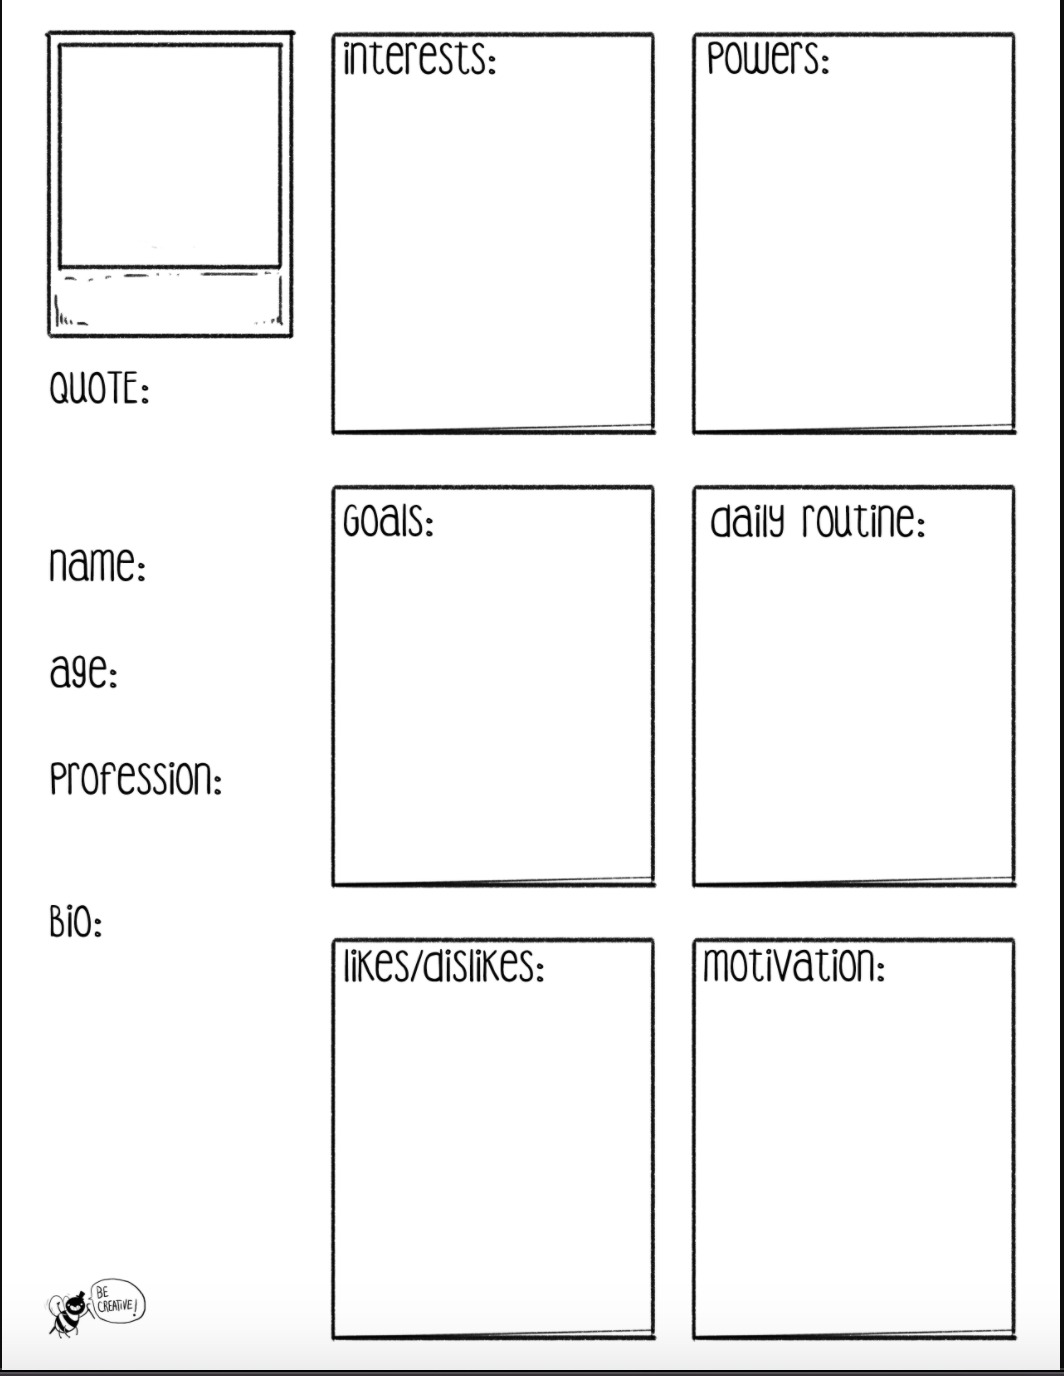 Image of an example persona worksheet.